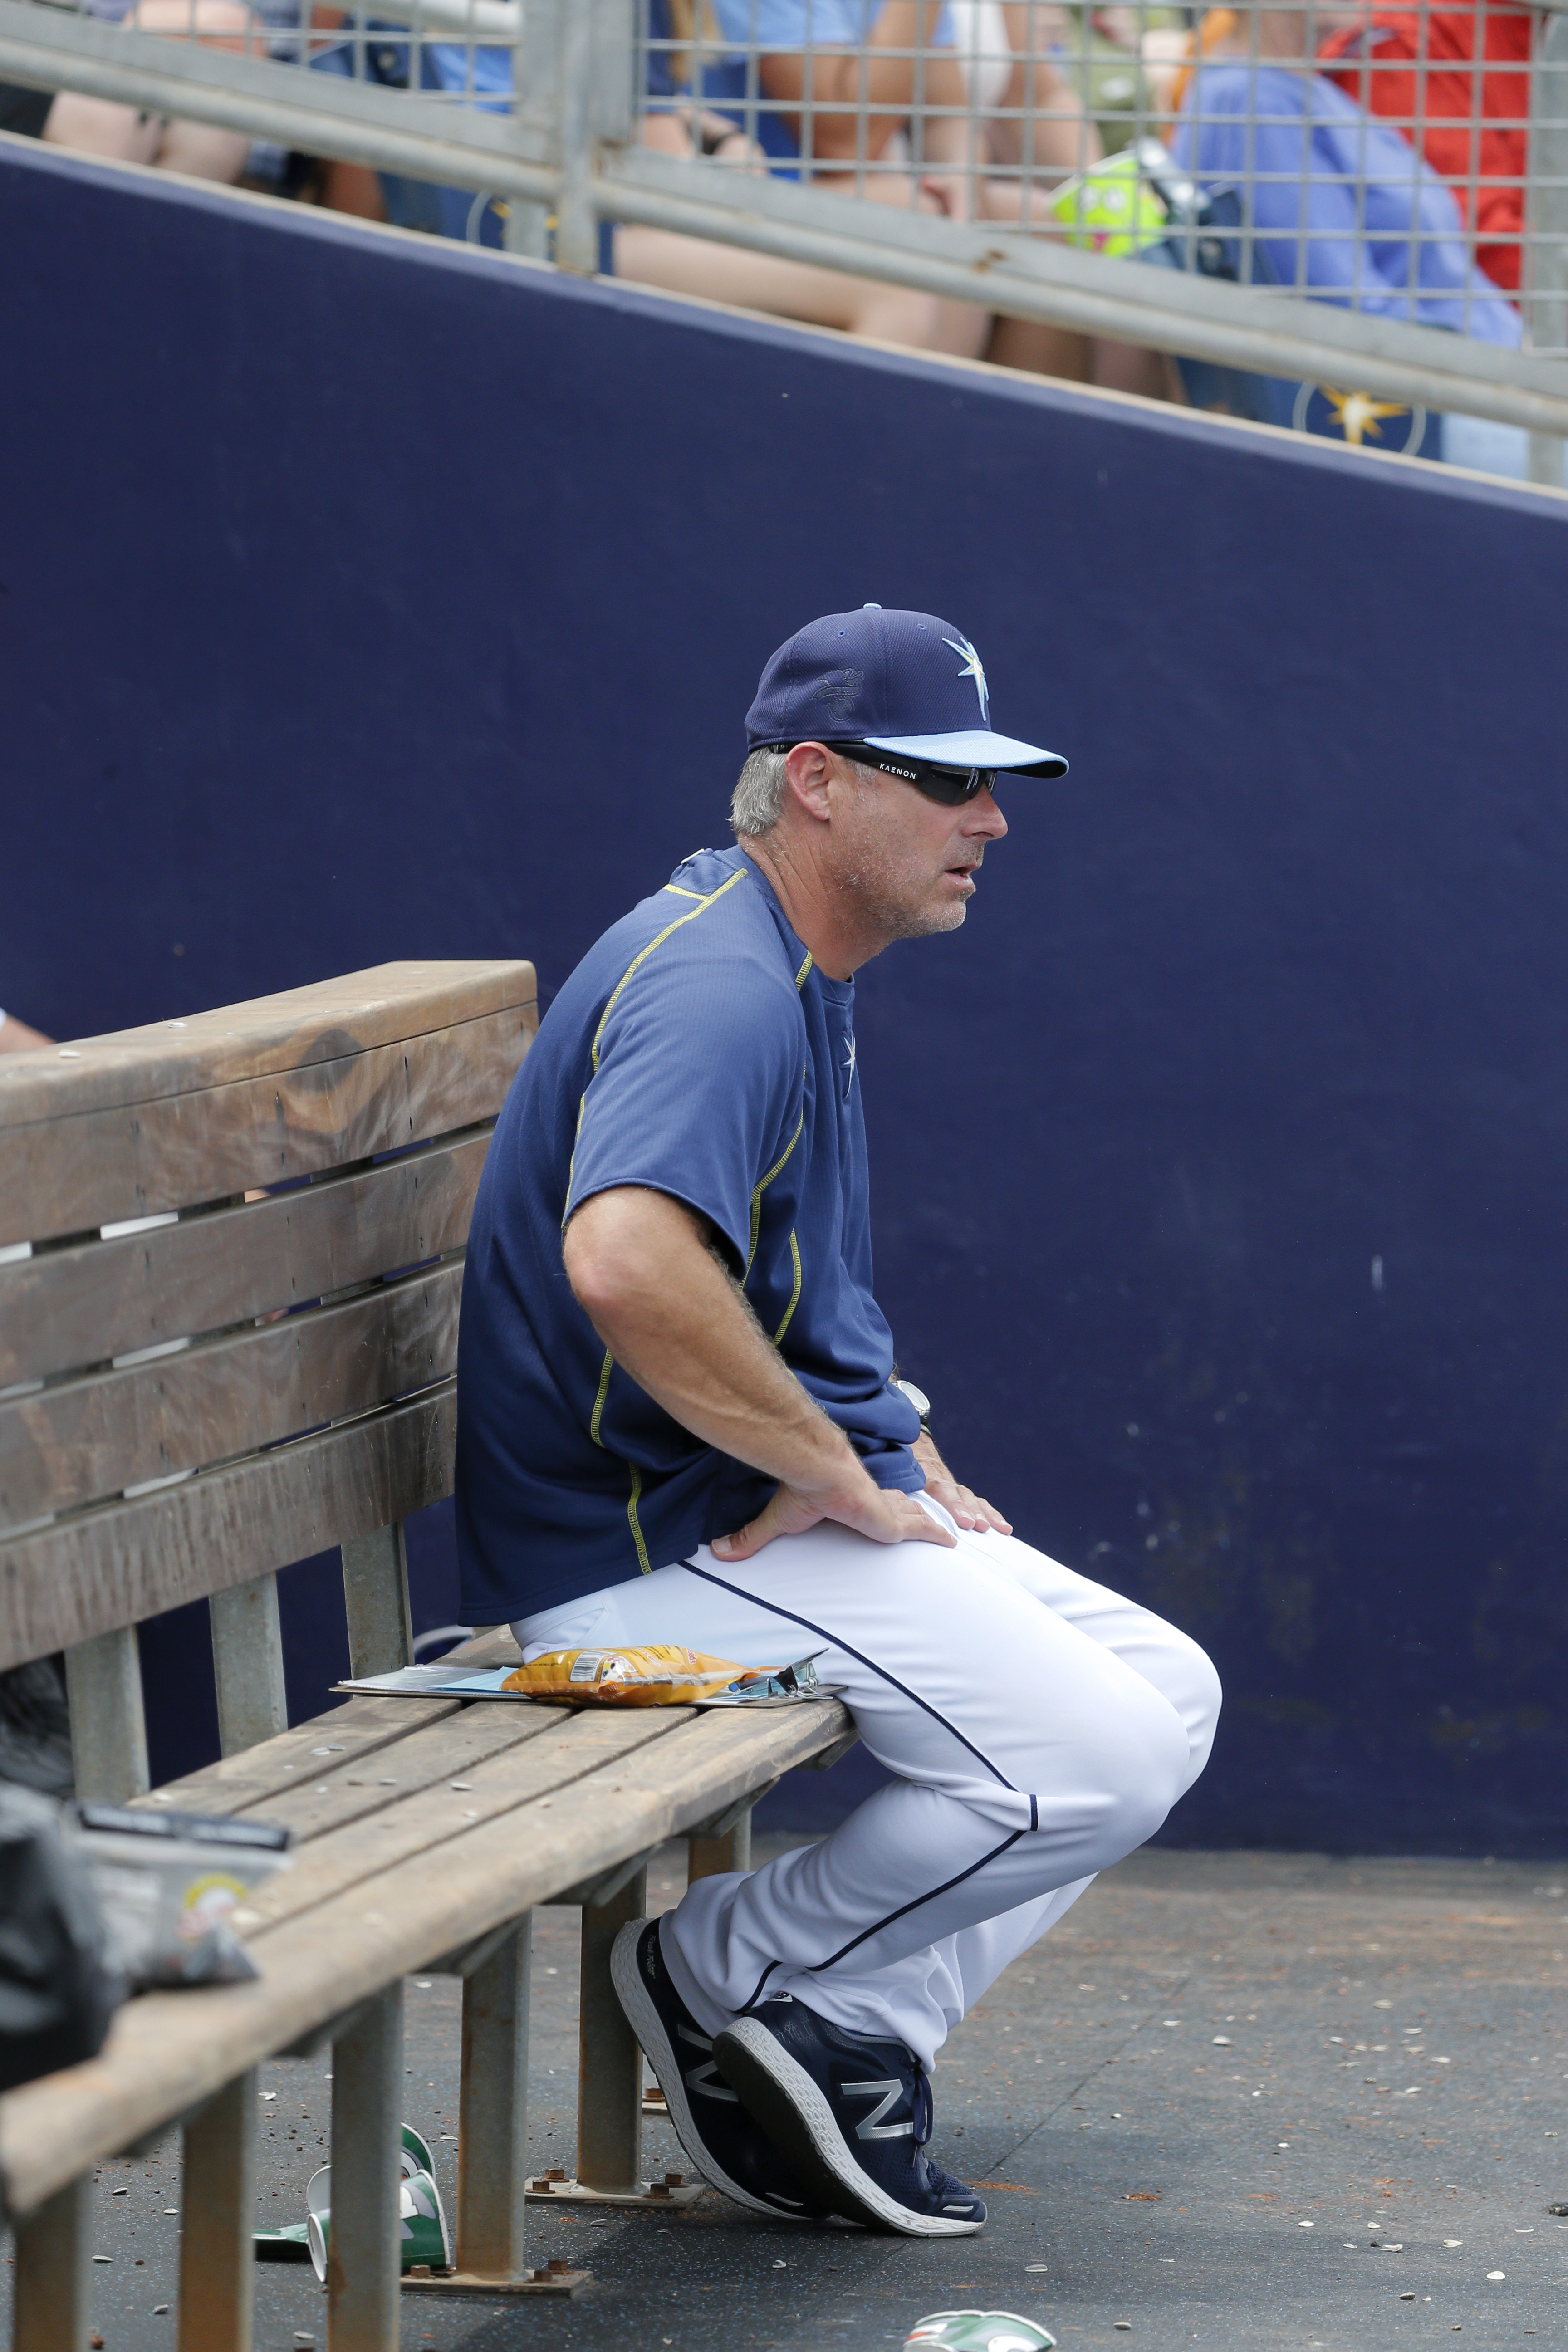 Tampa Bay Rays hitting coach Derek Shelton sits on the bench in the dugout during a spring training baseball game against the Minnesota Twins on Friday, March 25, 2016, in Port Charlotte, Fla. (AP Photo/Tony Gutierrez)